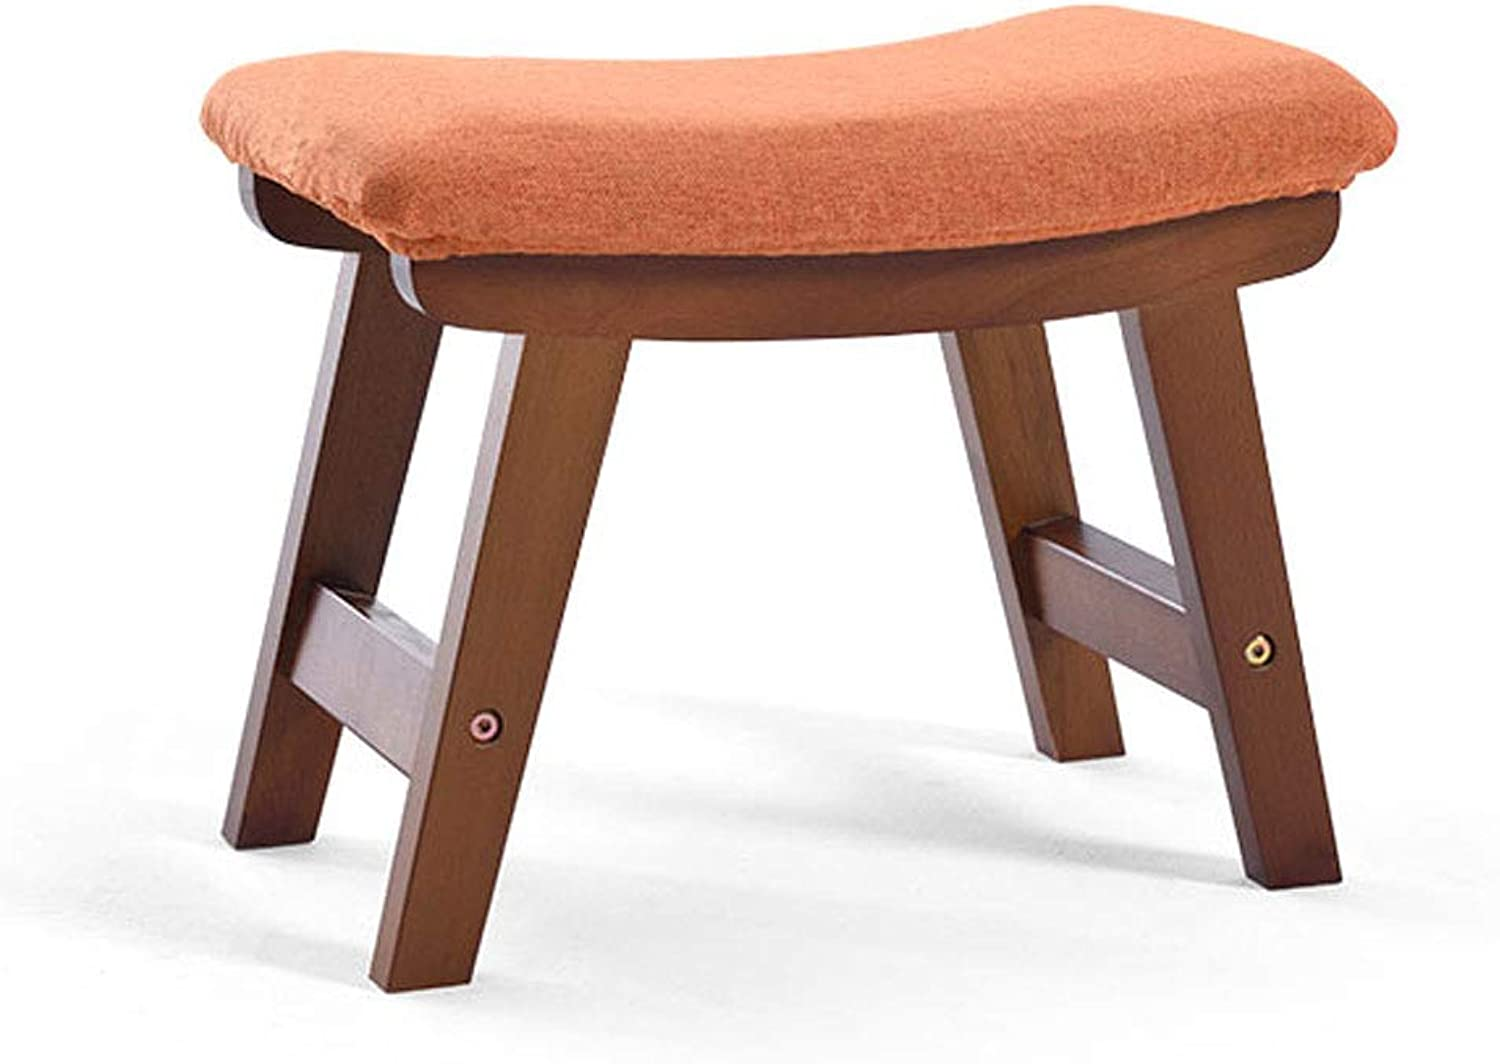 Household Wood Stool Fashion Creative Sofa Stool Living Room Small Bench Adult shoes Bench Chair Stool (Design   8)